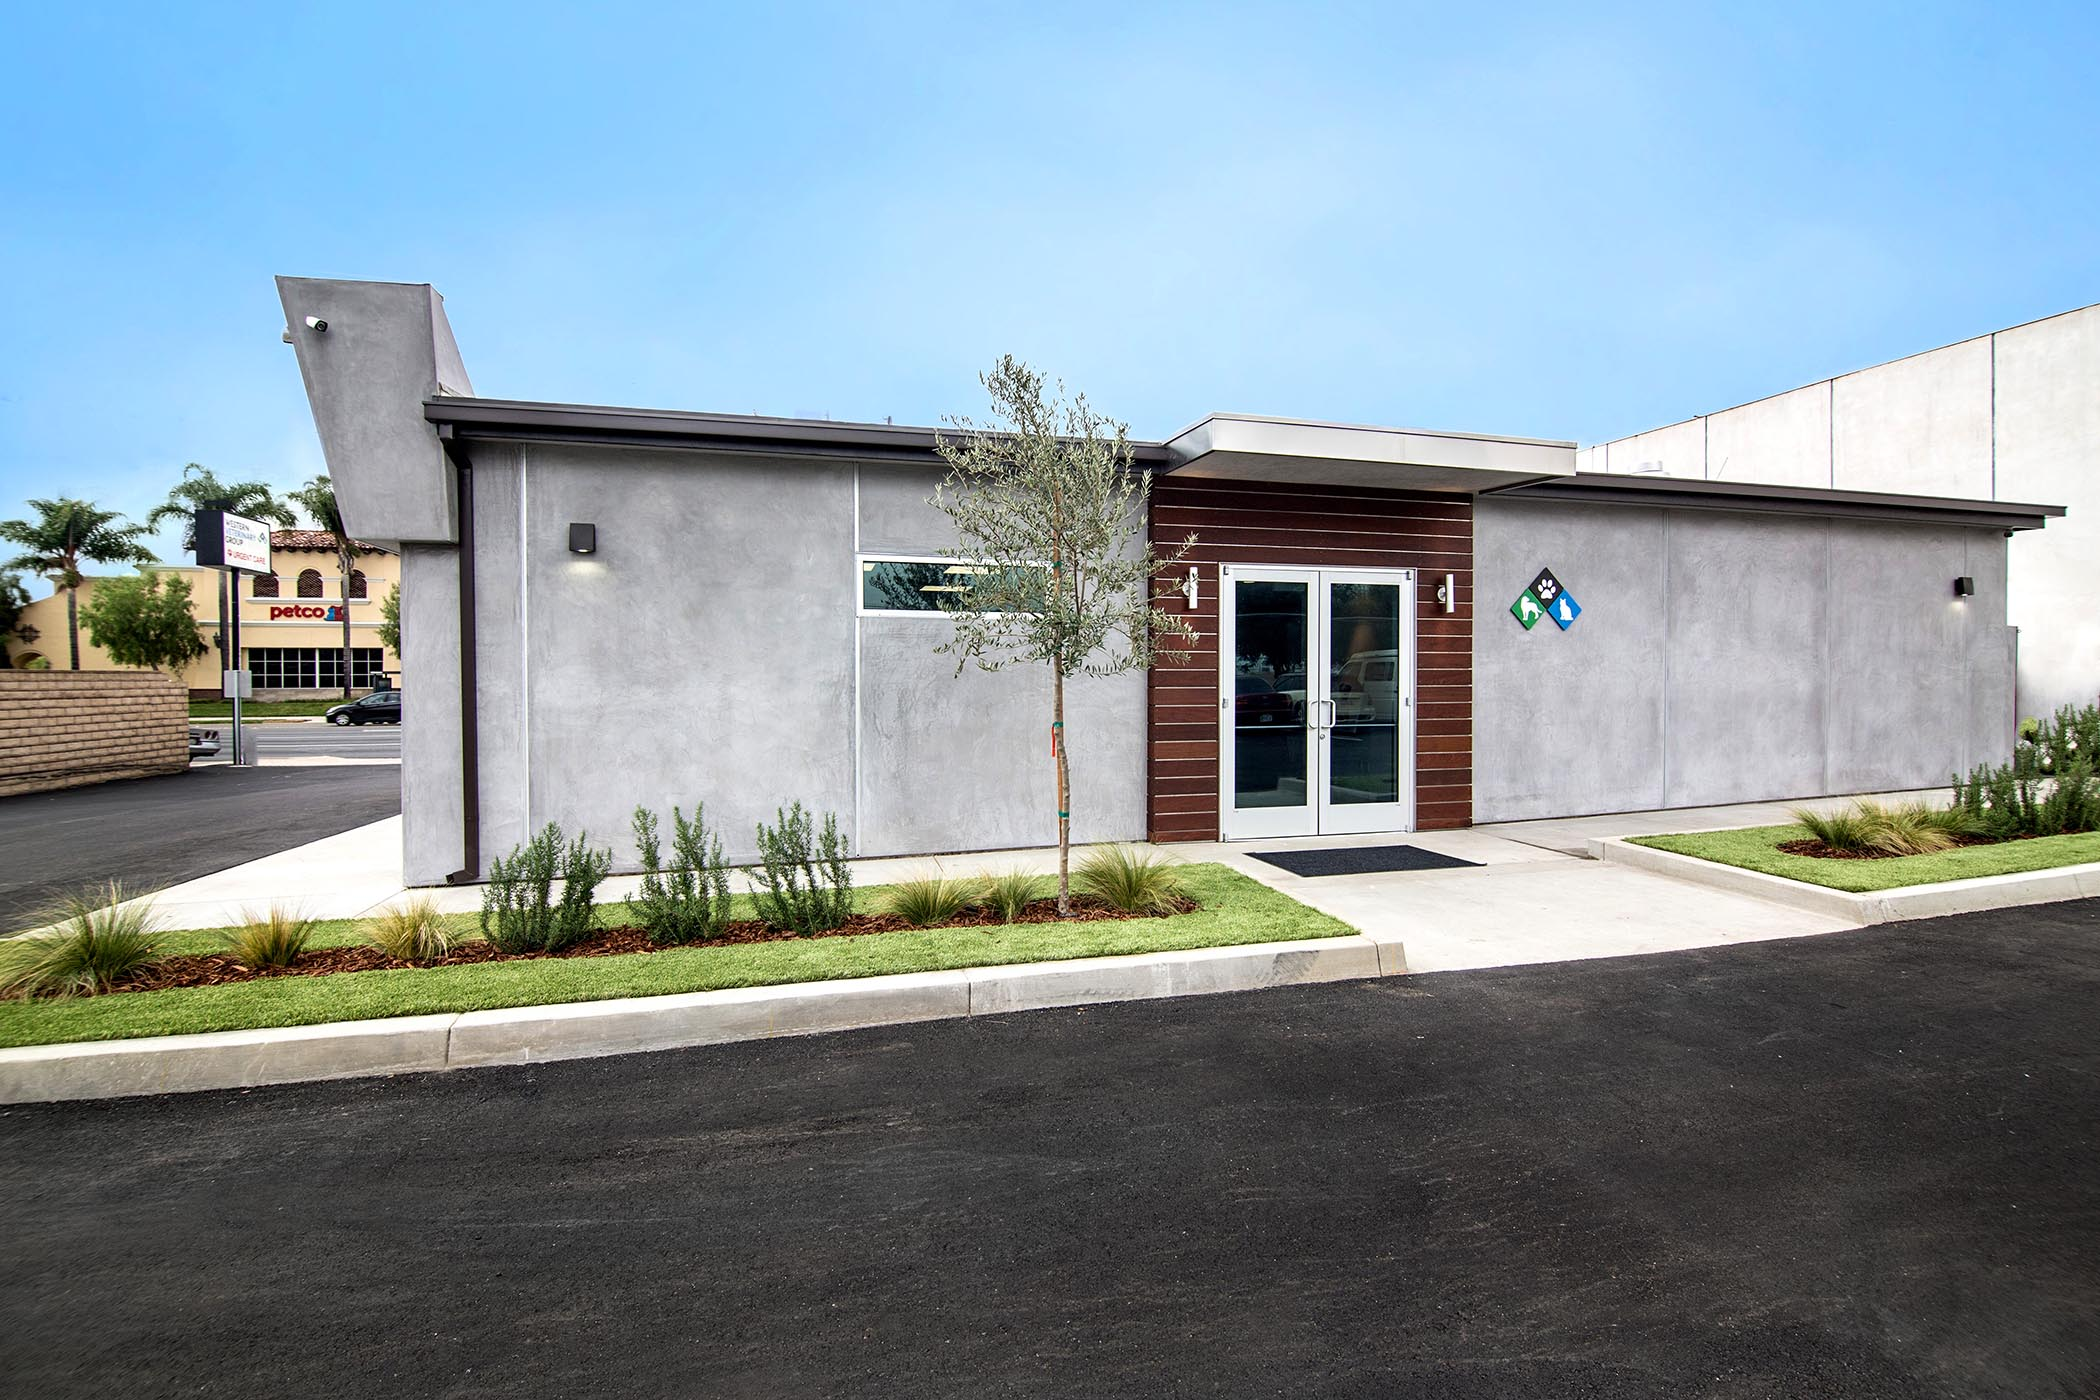 Tour Western Veterinary Group Facilities Torrance Amp Harbor